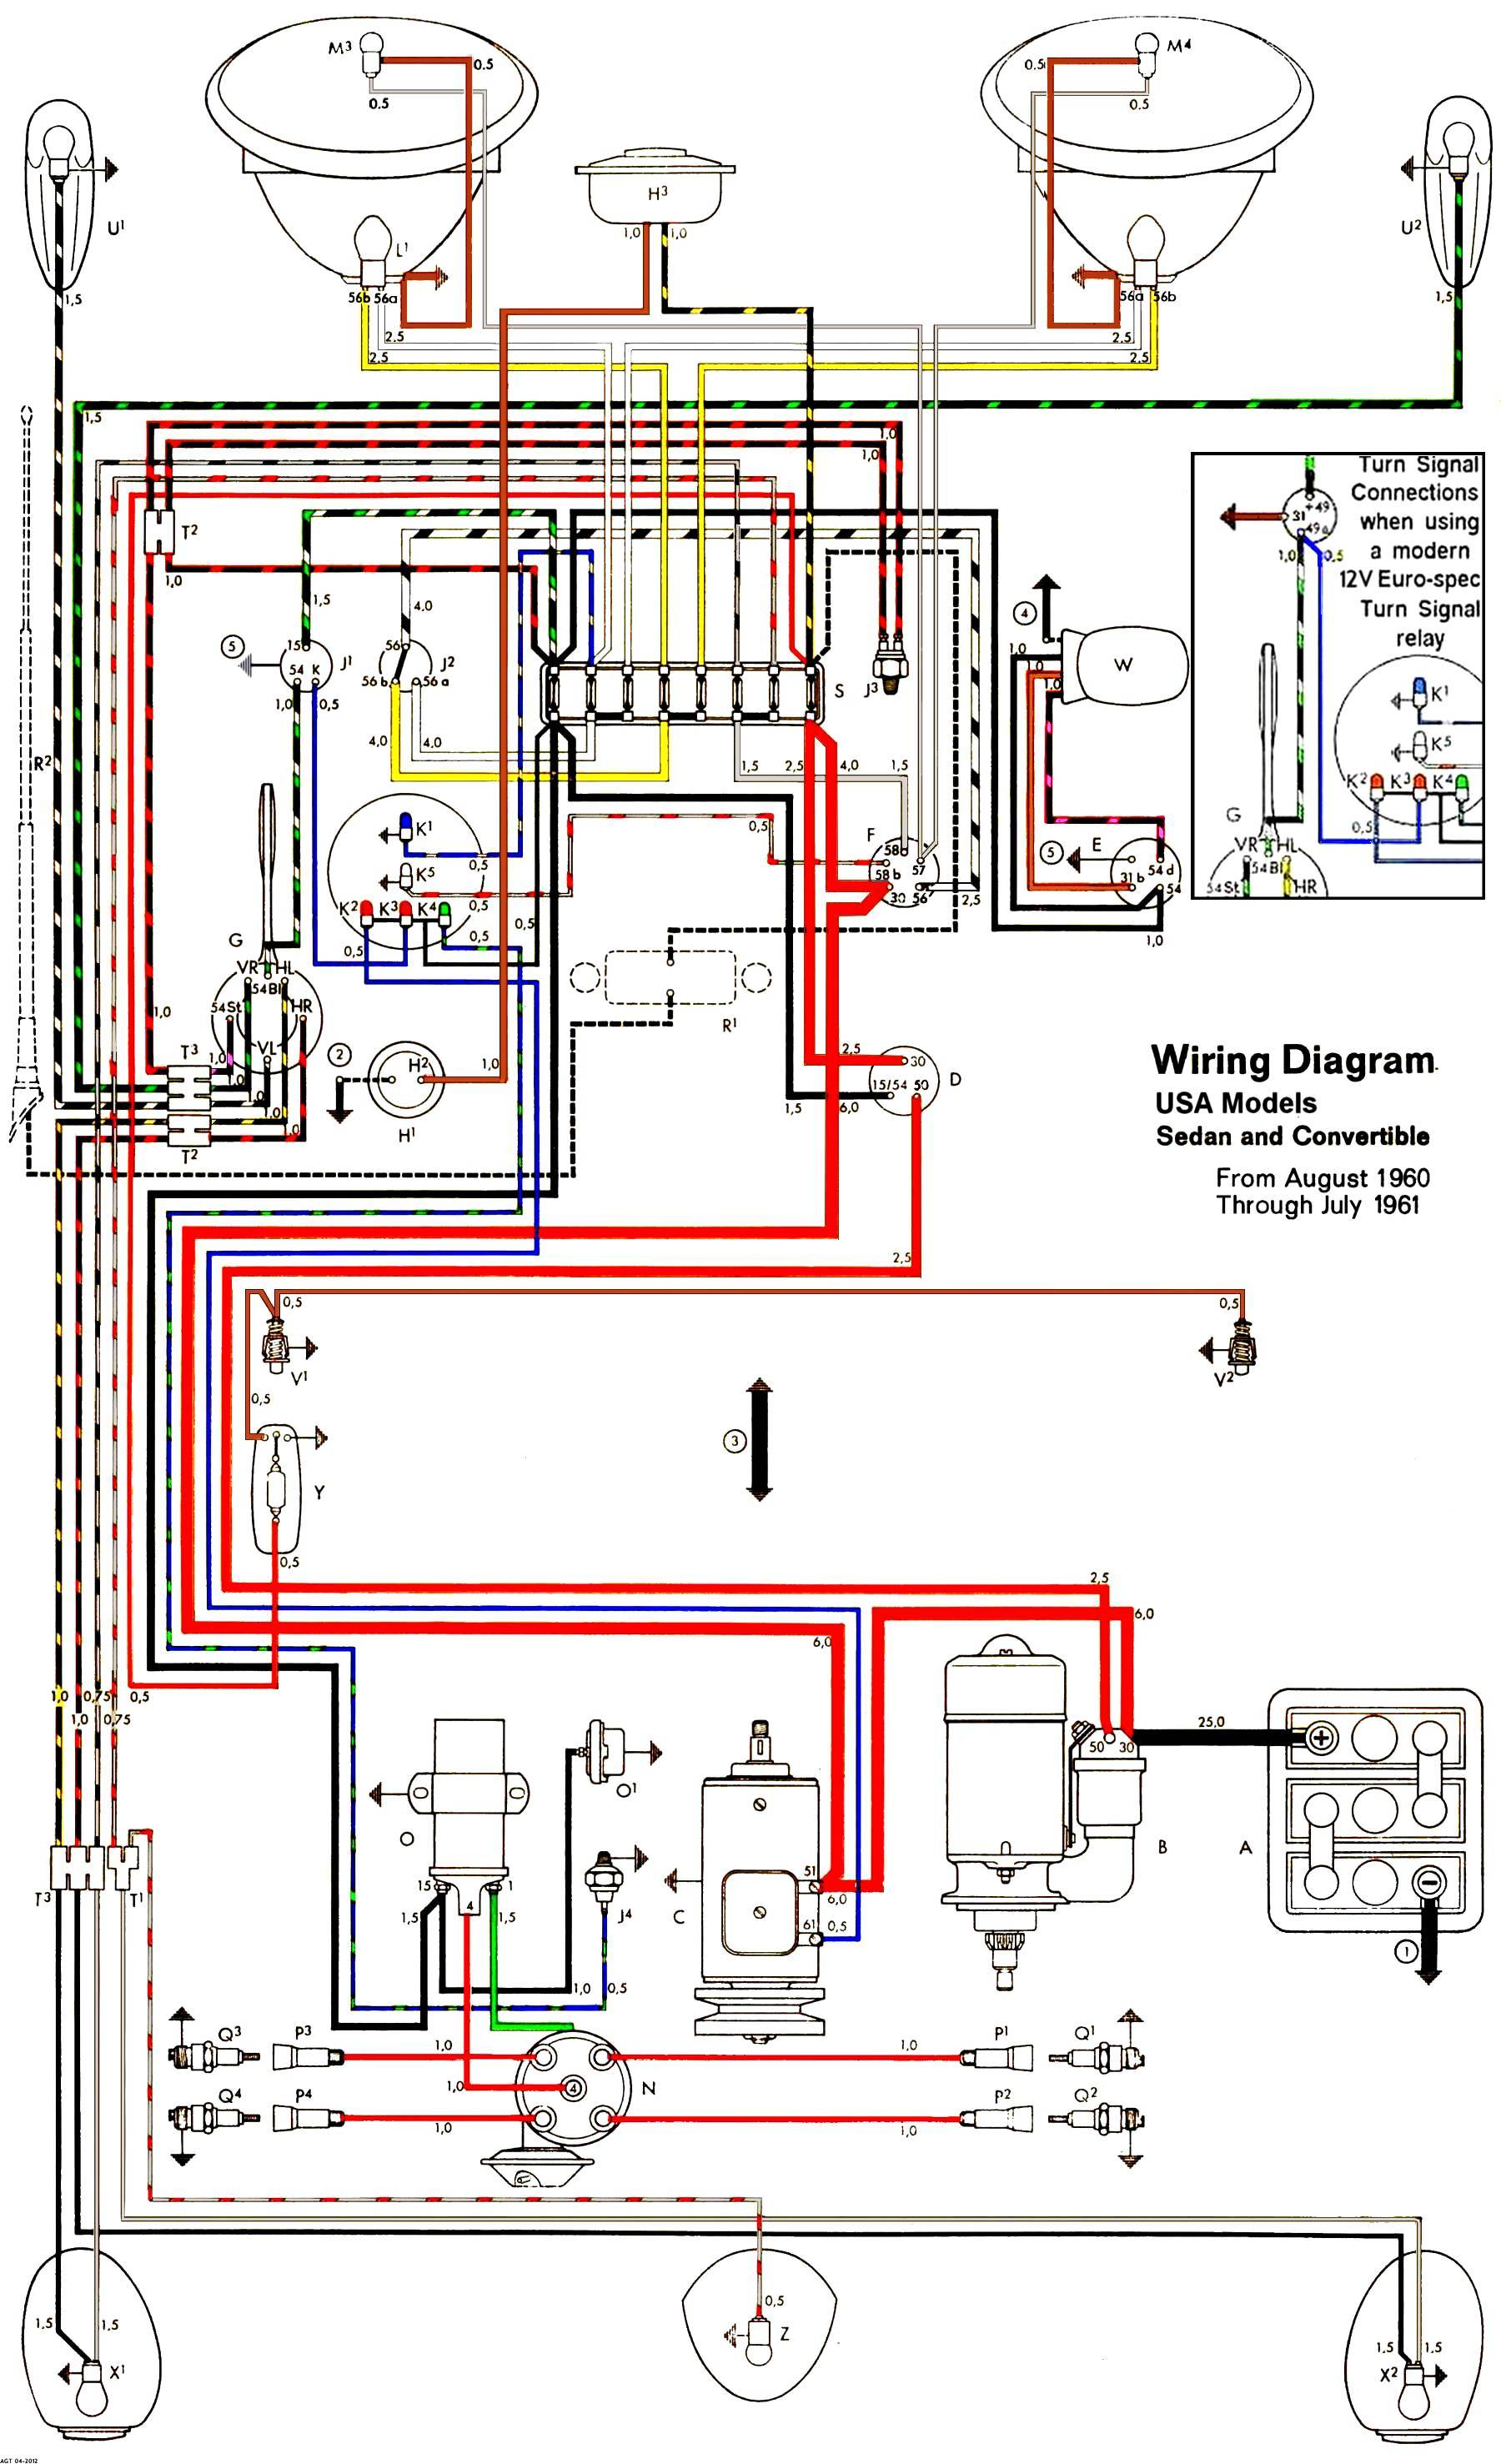 diagram additionally 1972 volkswagen beetle voltage regulator wiring1967 vw bug wiring harness box wiring diagram diagram additionally 1972 volkswagen beetle voltage regulator